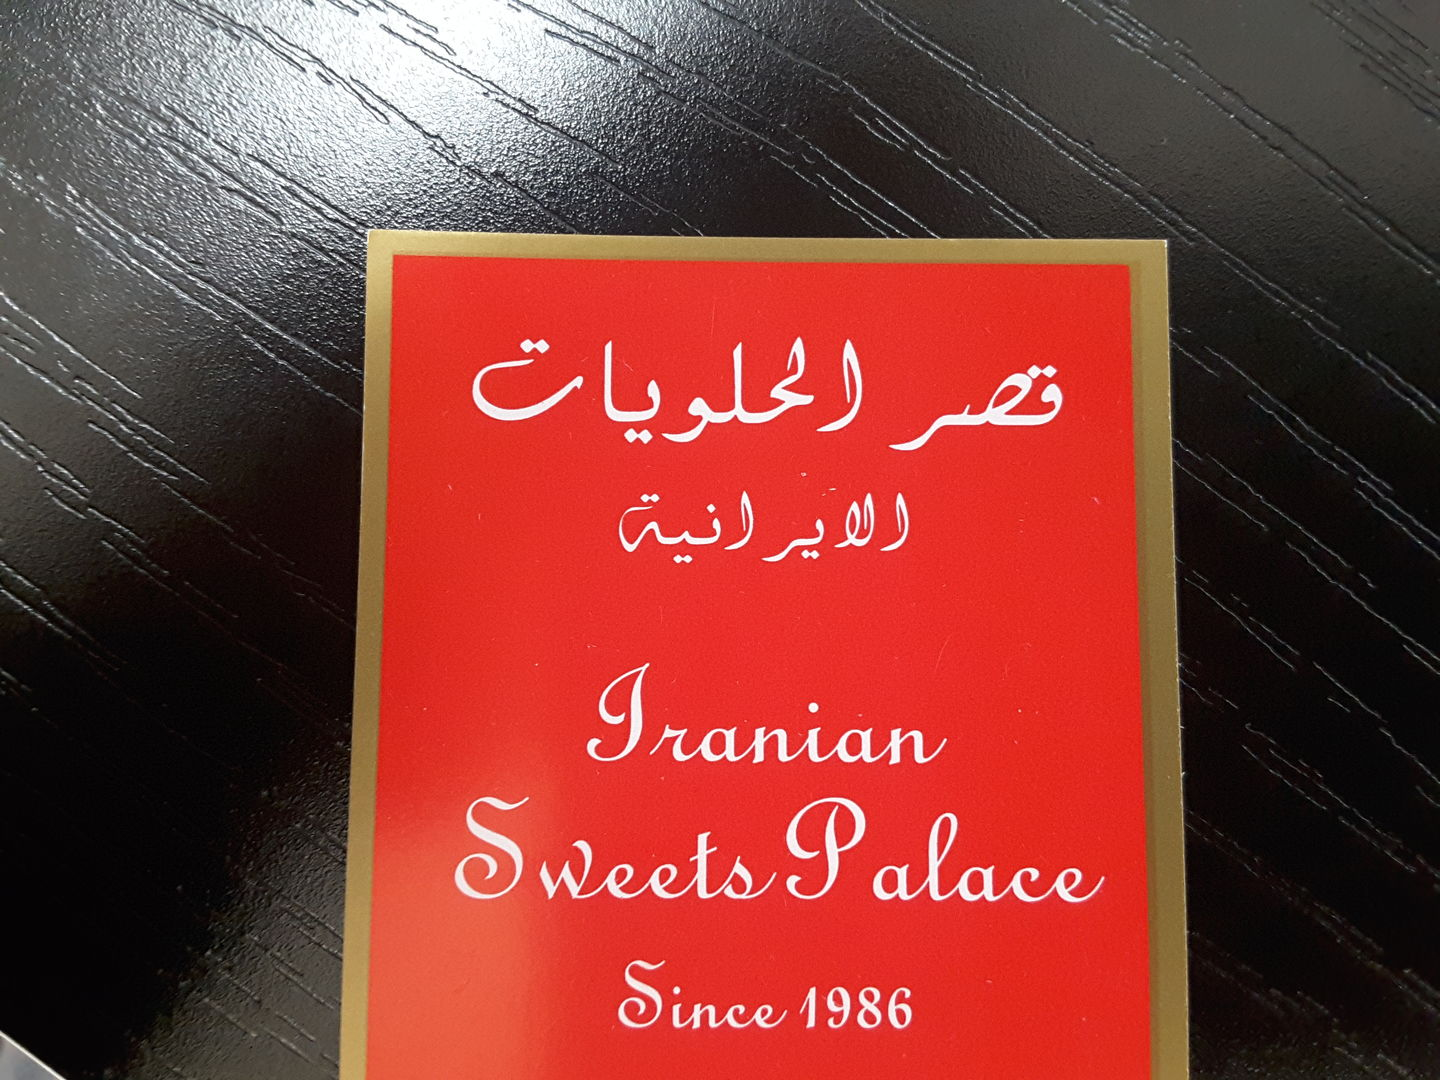 HiDubai-business-iranian-sweets-palace-food-beverage-bakeries-desserts-sweets-al-jafiliya-dubai-2